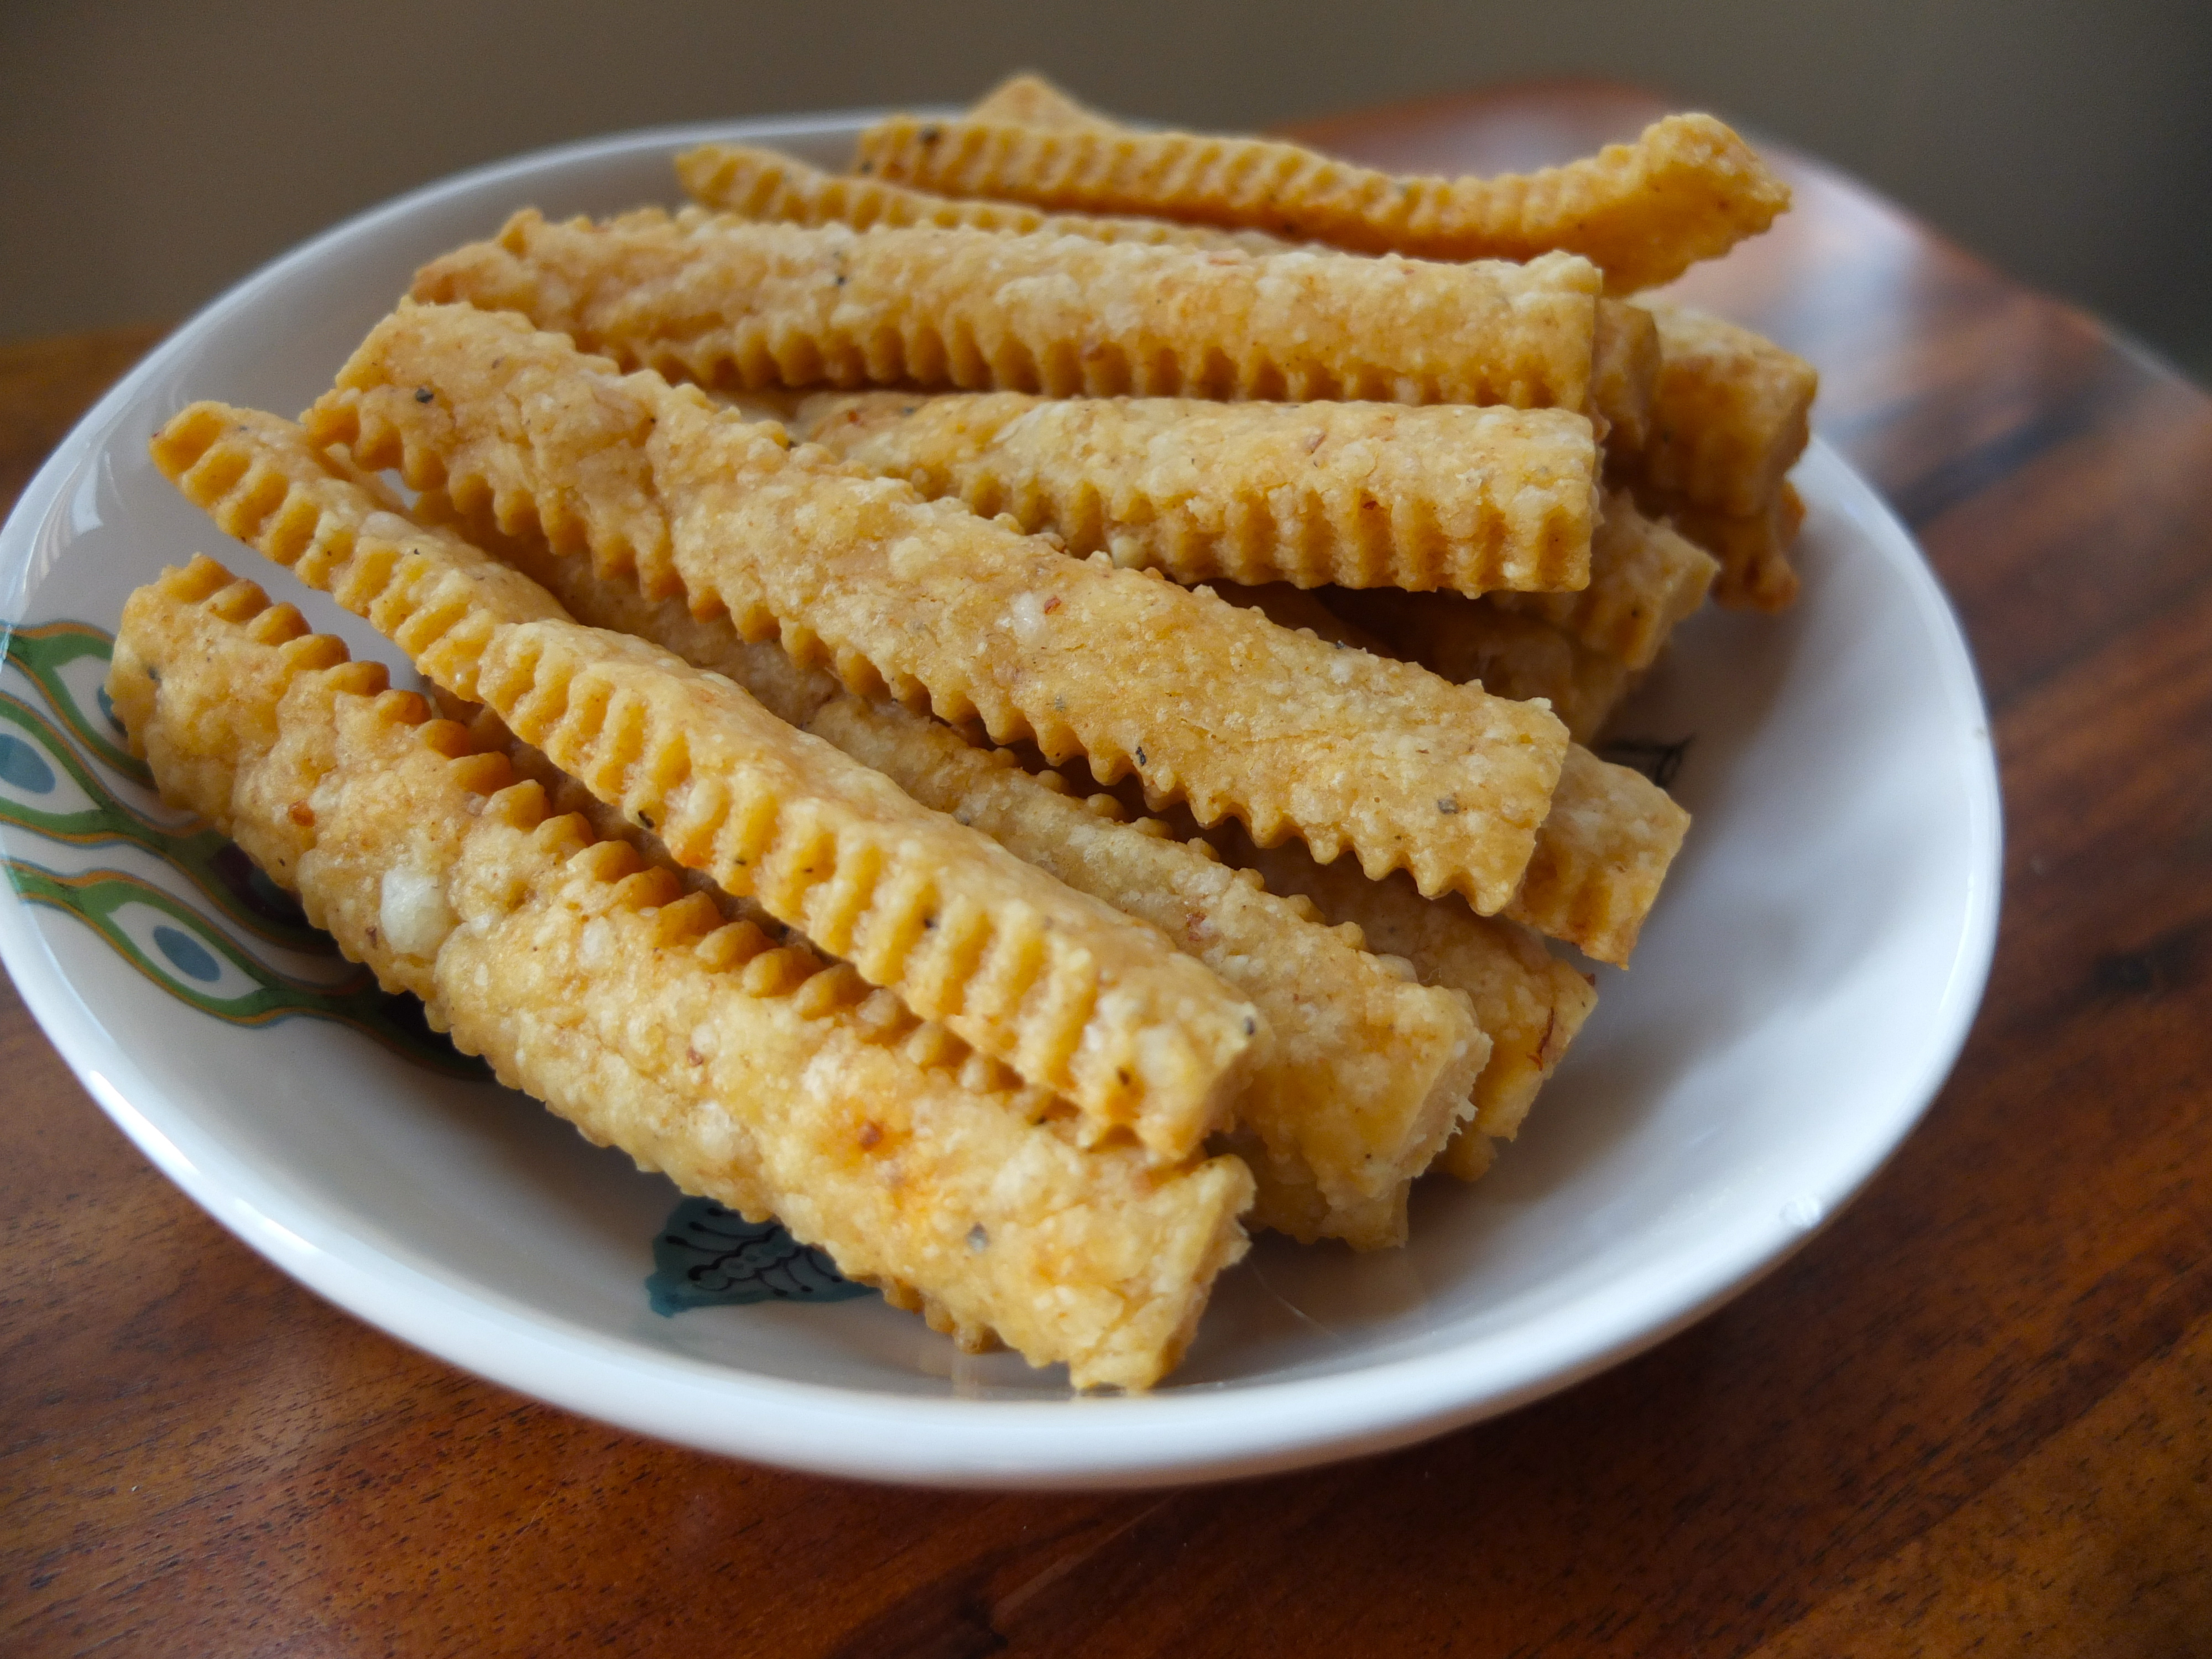 Applewood Smoked Cheddar Cheese Straws (adapted from Smitten Kitchen)